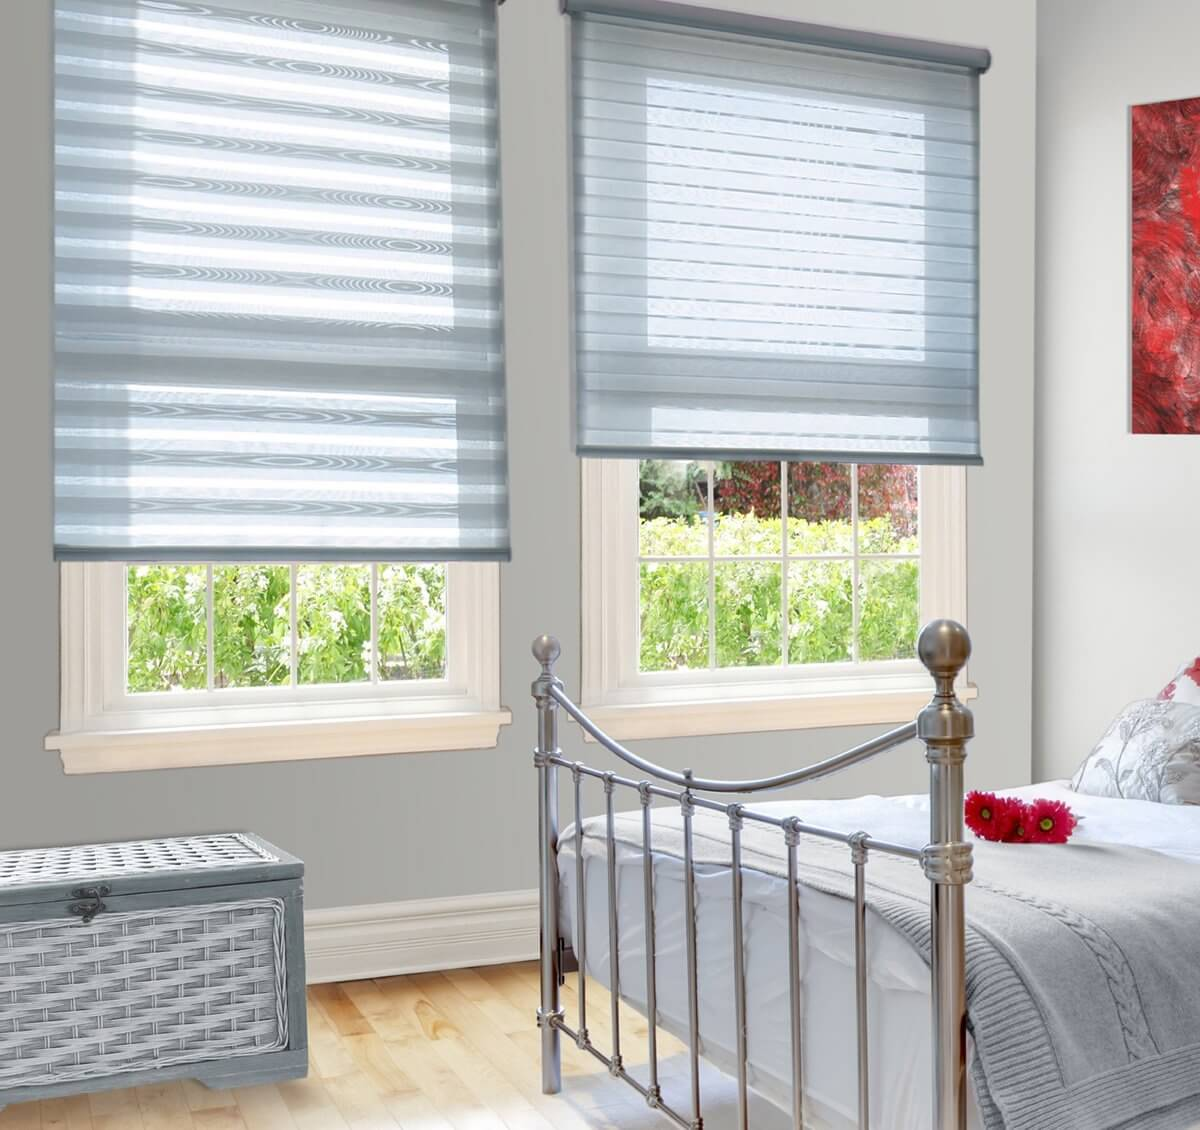 Diamond Silver | Vision Blinds